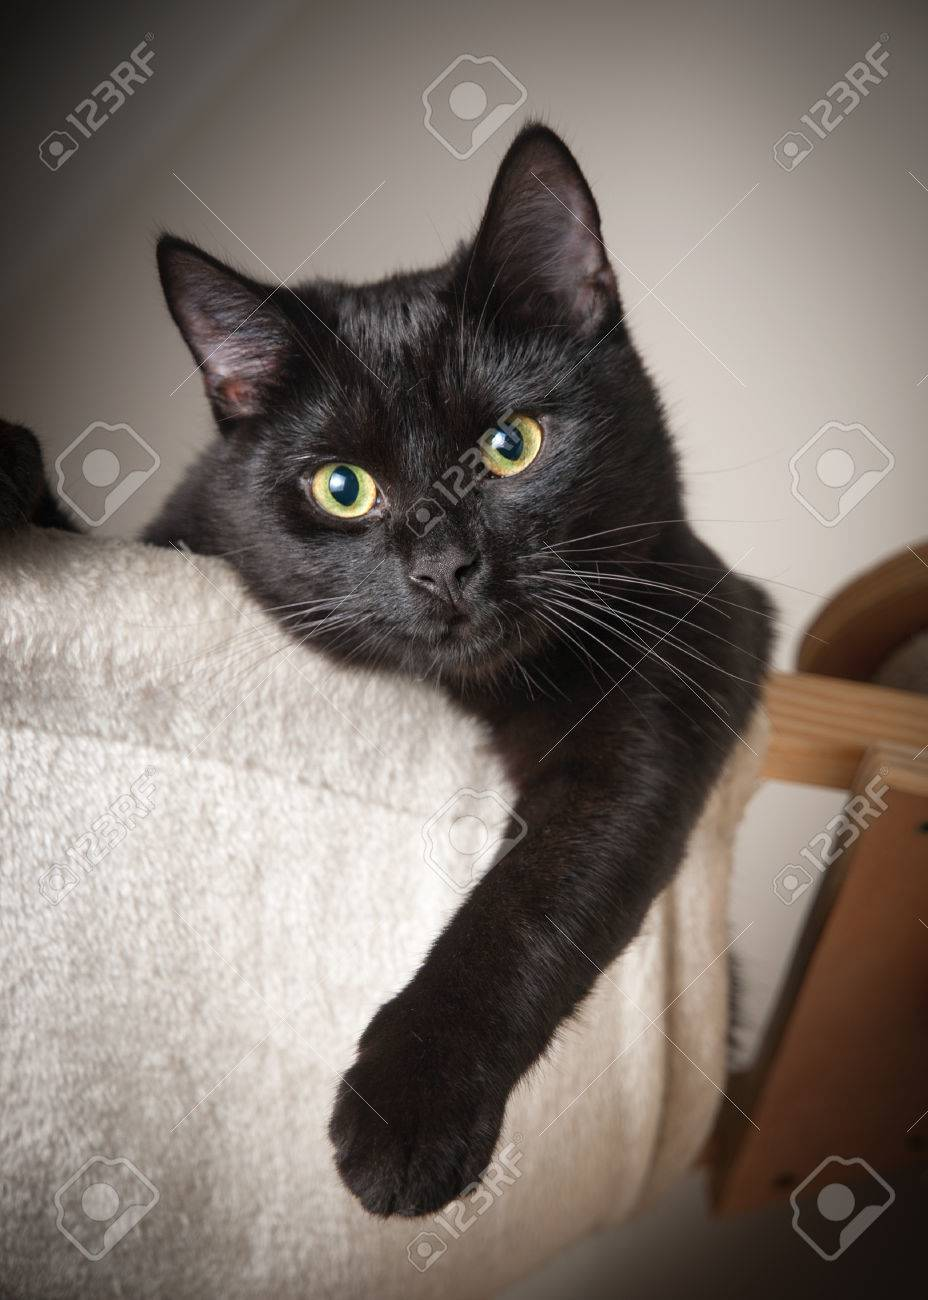 Beautiful Black Cat On The Top Of A Cloth Stock Photo Picture And Royalty Free Image Image 32805532